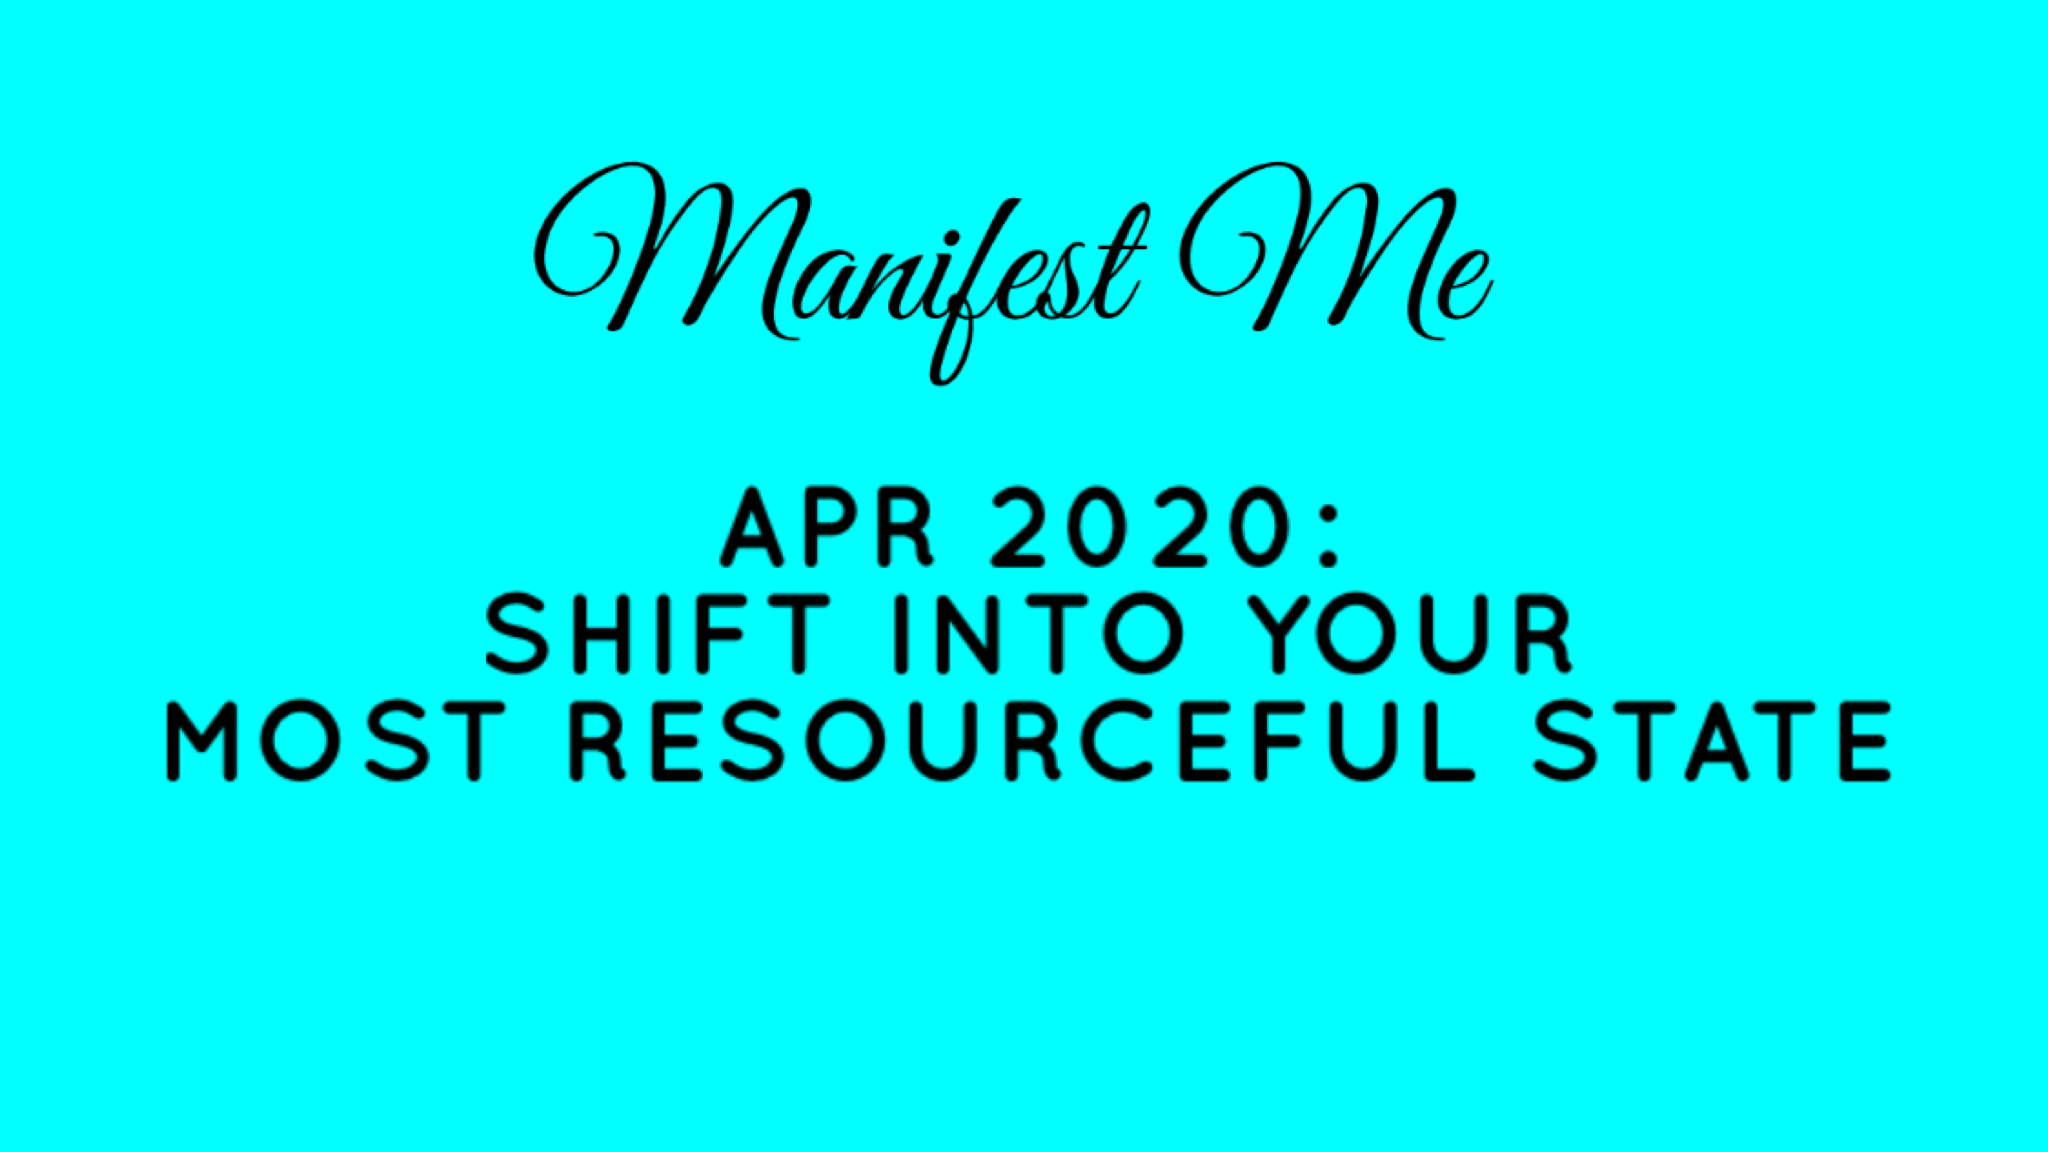 Shift Into Your Most Resourceful State